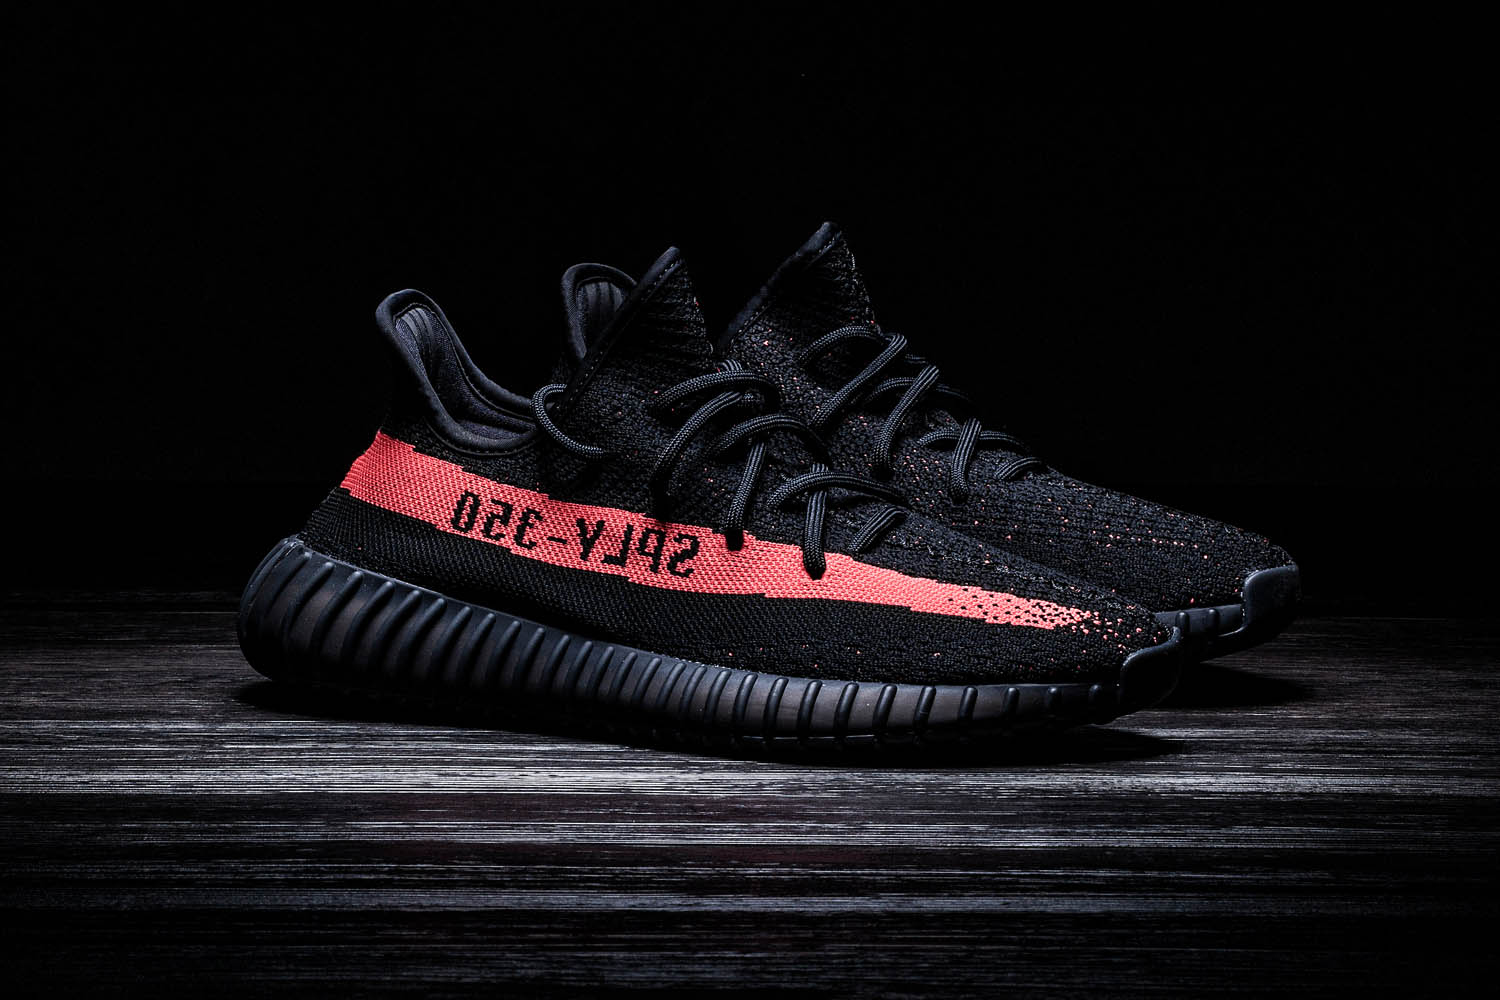 Cheap Adidas Yeezy 350 Boost v2 Black Green review.